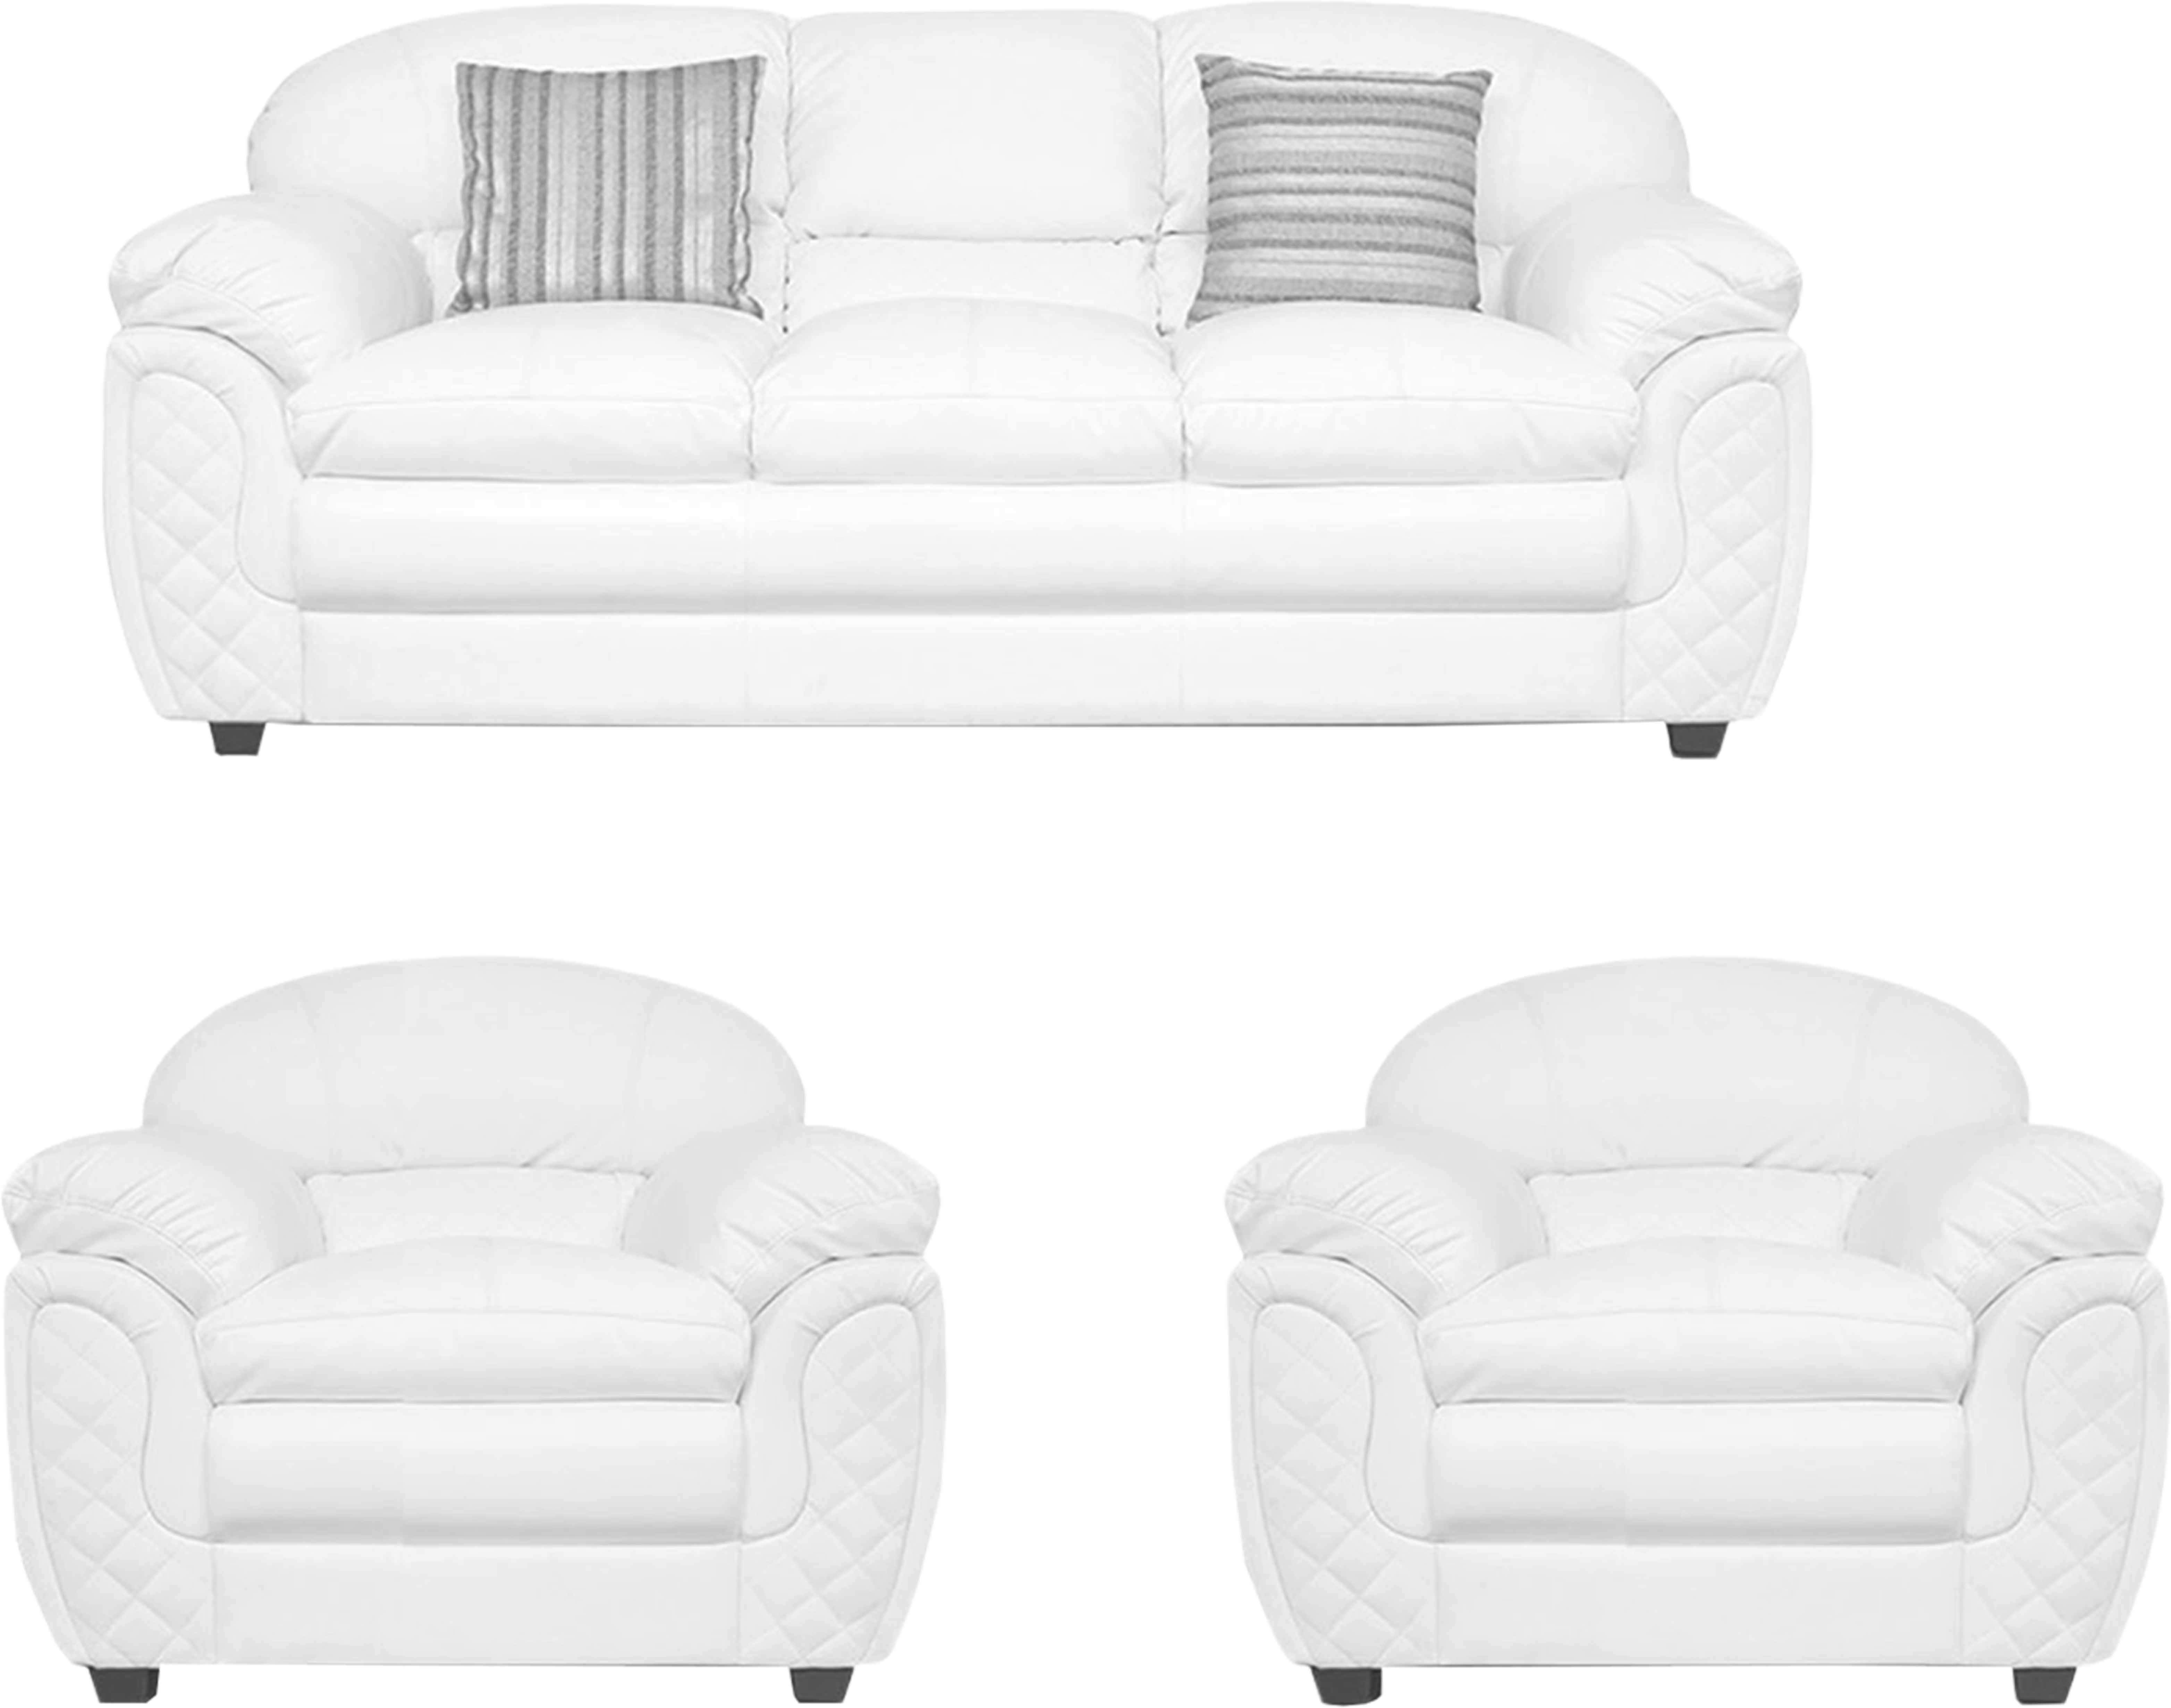 Miraculous Buy Comfy Sofa Leatherette 3 1 1 White Sofa Set Machost Co Dining Chair Design Ideas Machostcouk